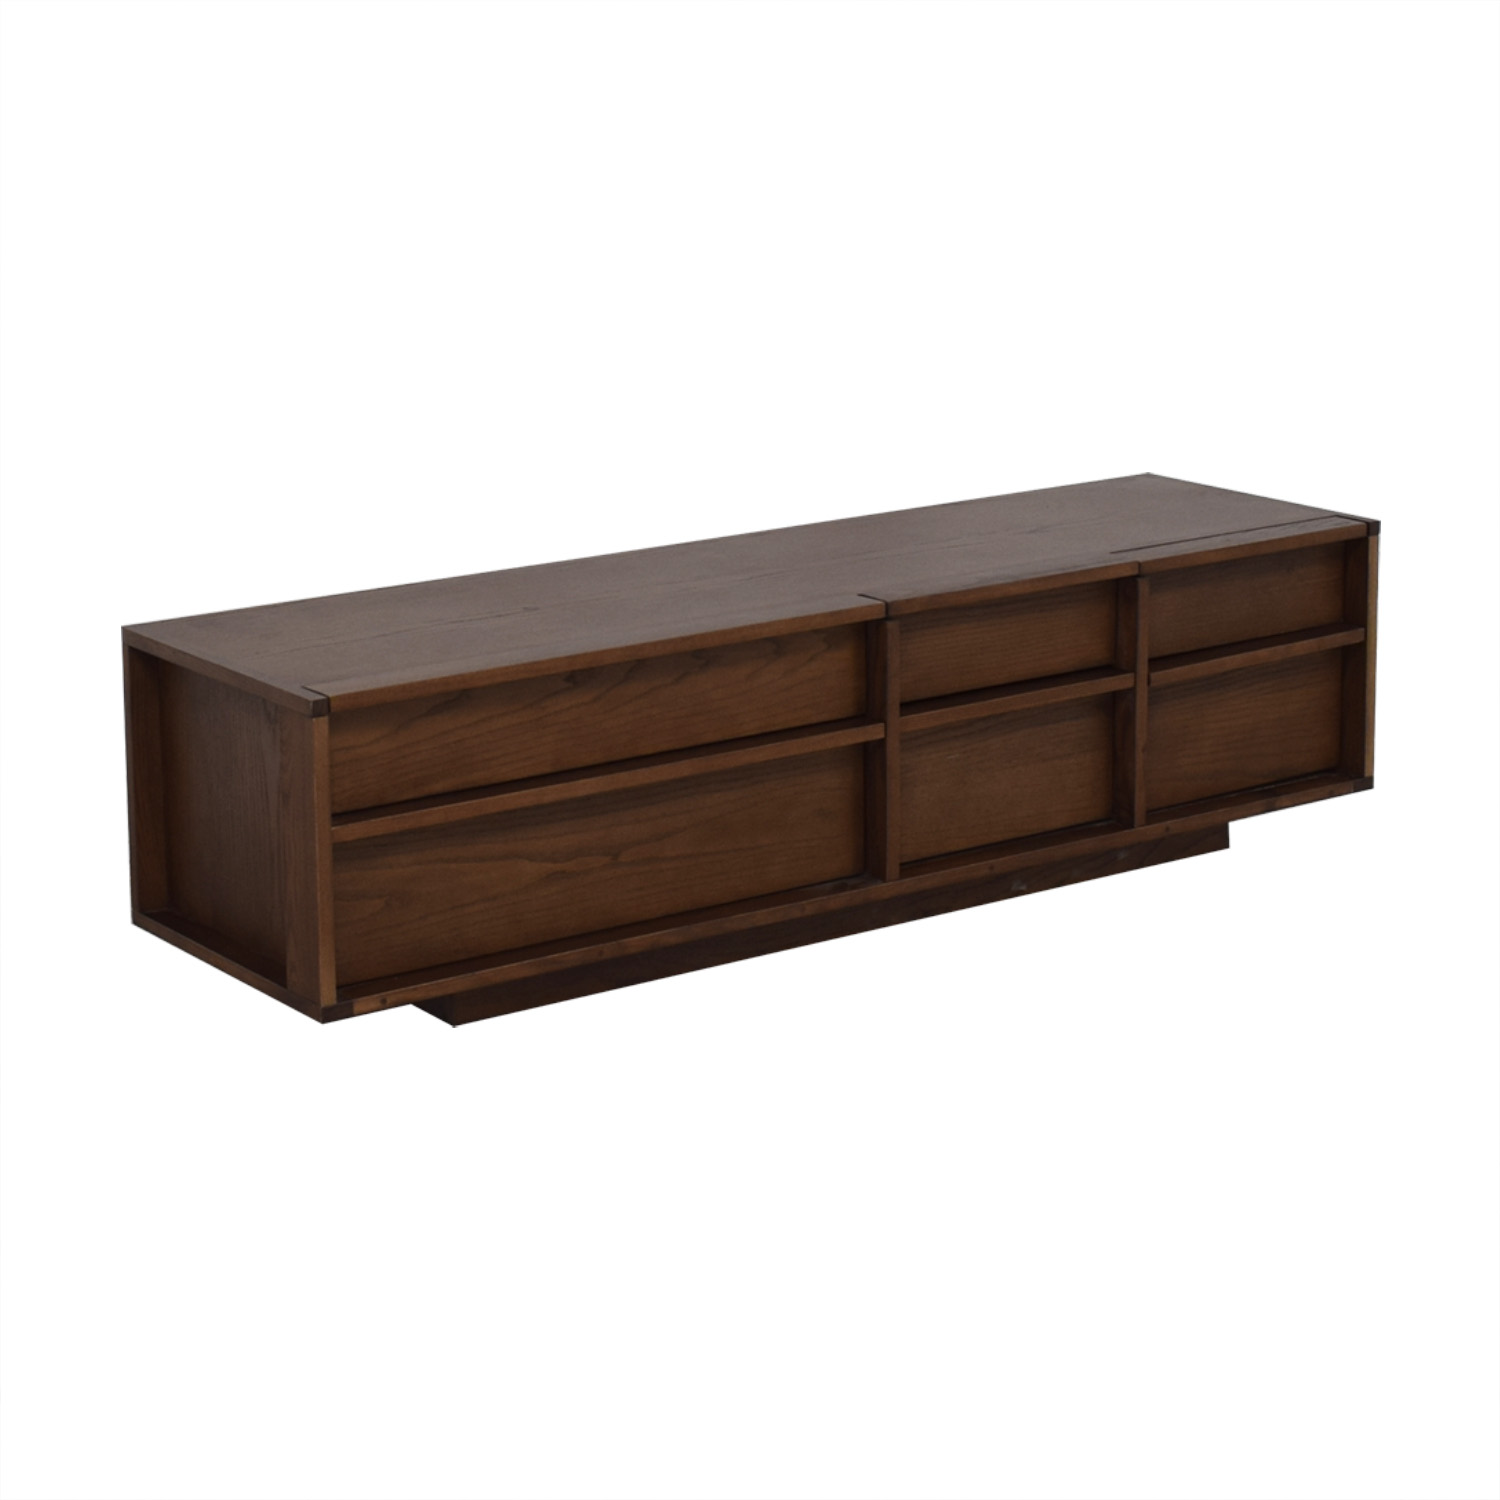 Jottergoods Jottergoods BLK TV Sideboard on sale